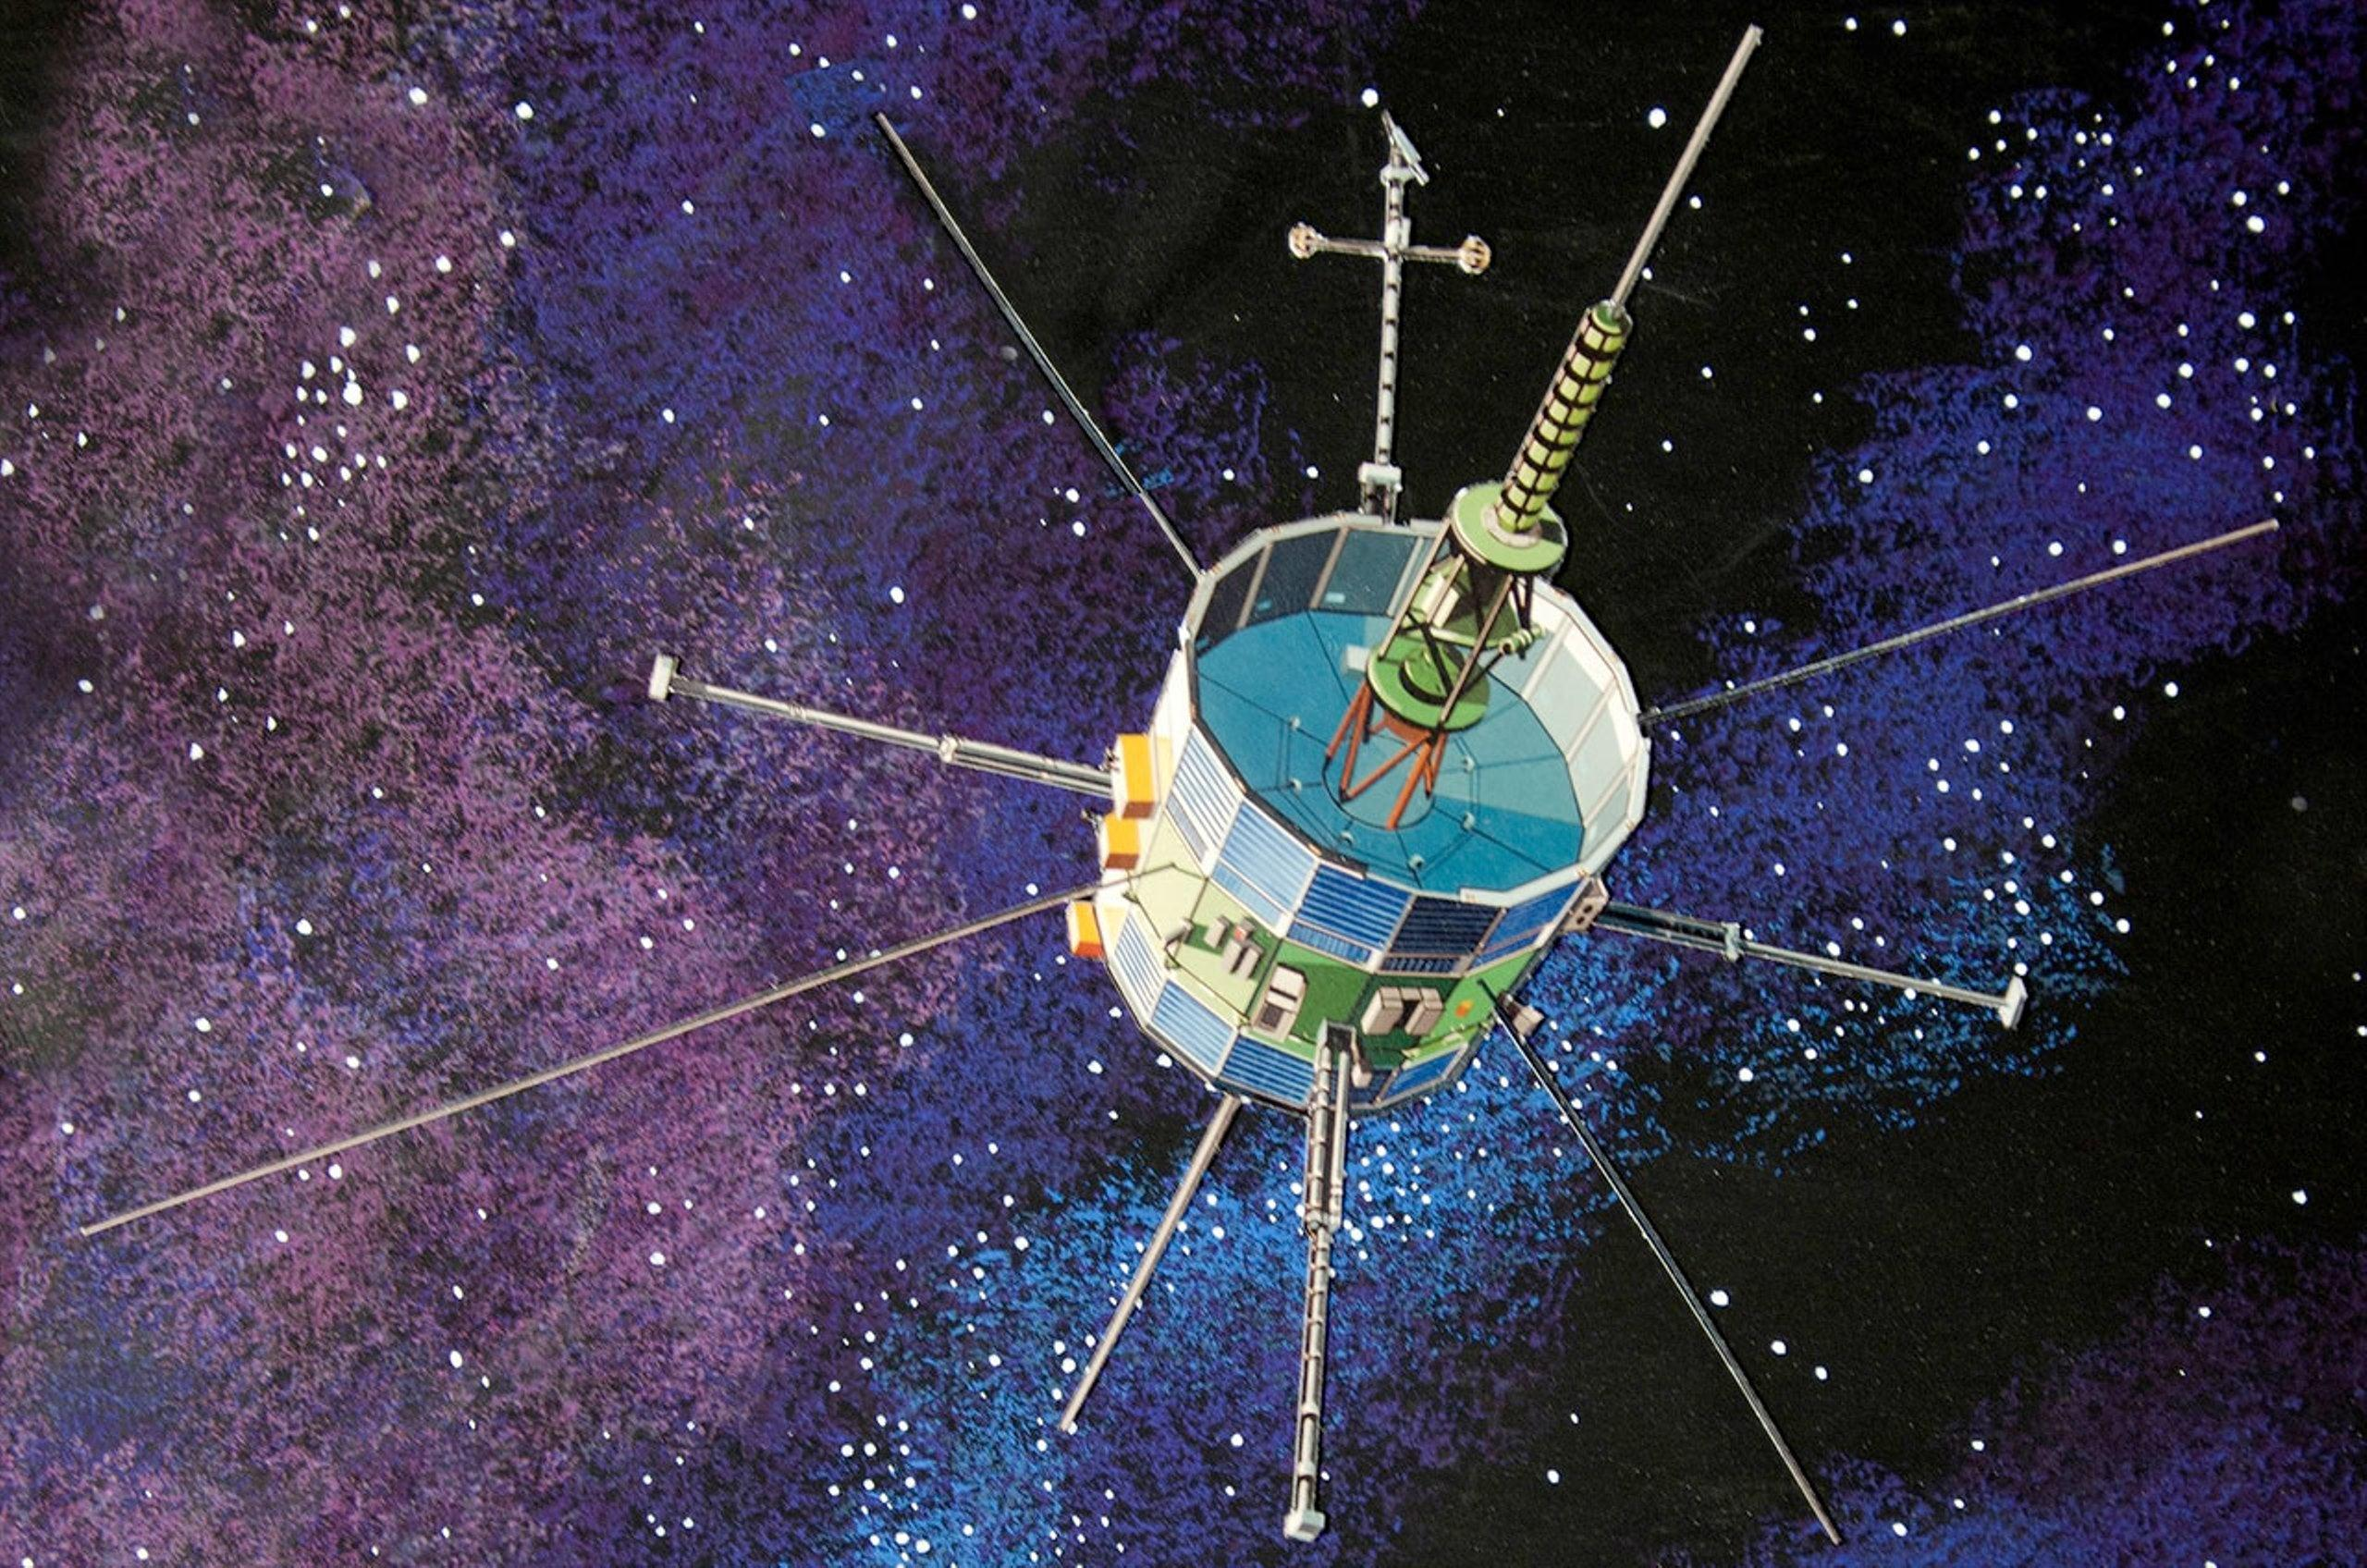 The 36 year old NASA spacecraft,ISEE 3